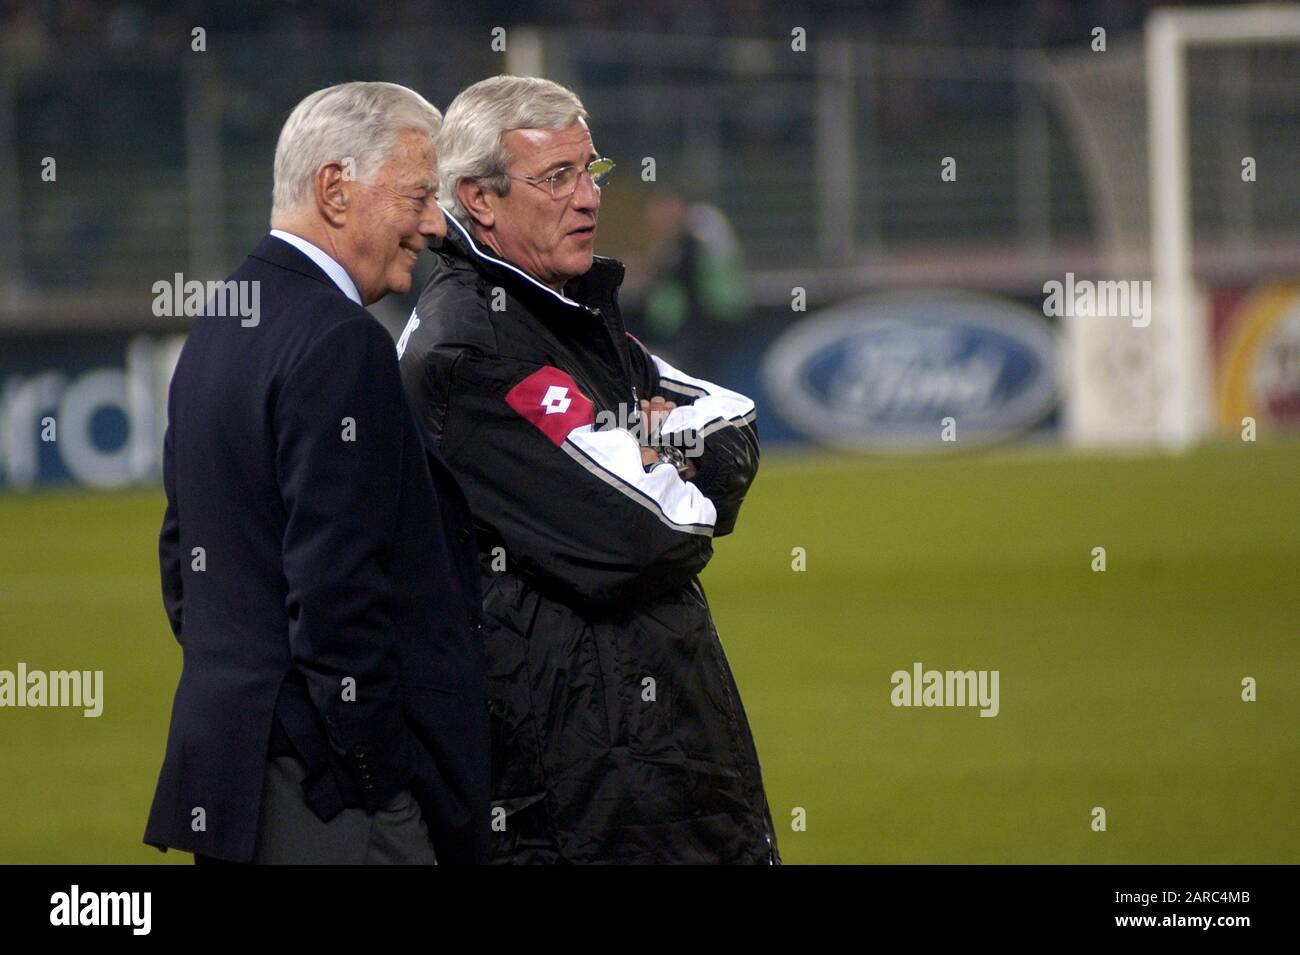 """Turin Italy ,12 March  2003, """"Delle Alpi"""" Stadium, UEFA Champions League 2002/2003, FC Juventus- FC Manchester United: Juventus president Umberto Agnelli and the coach Marcello Lippi before the match Stock Photo"""